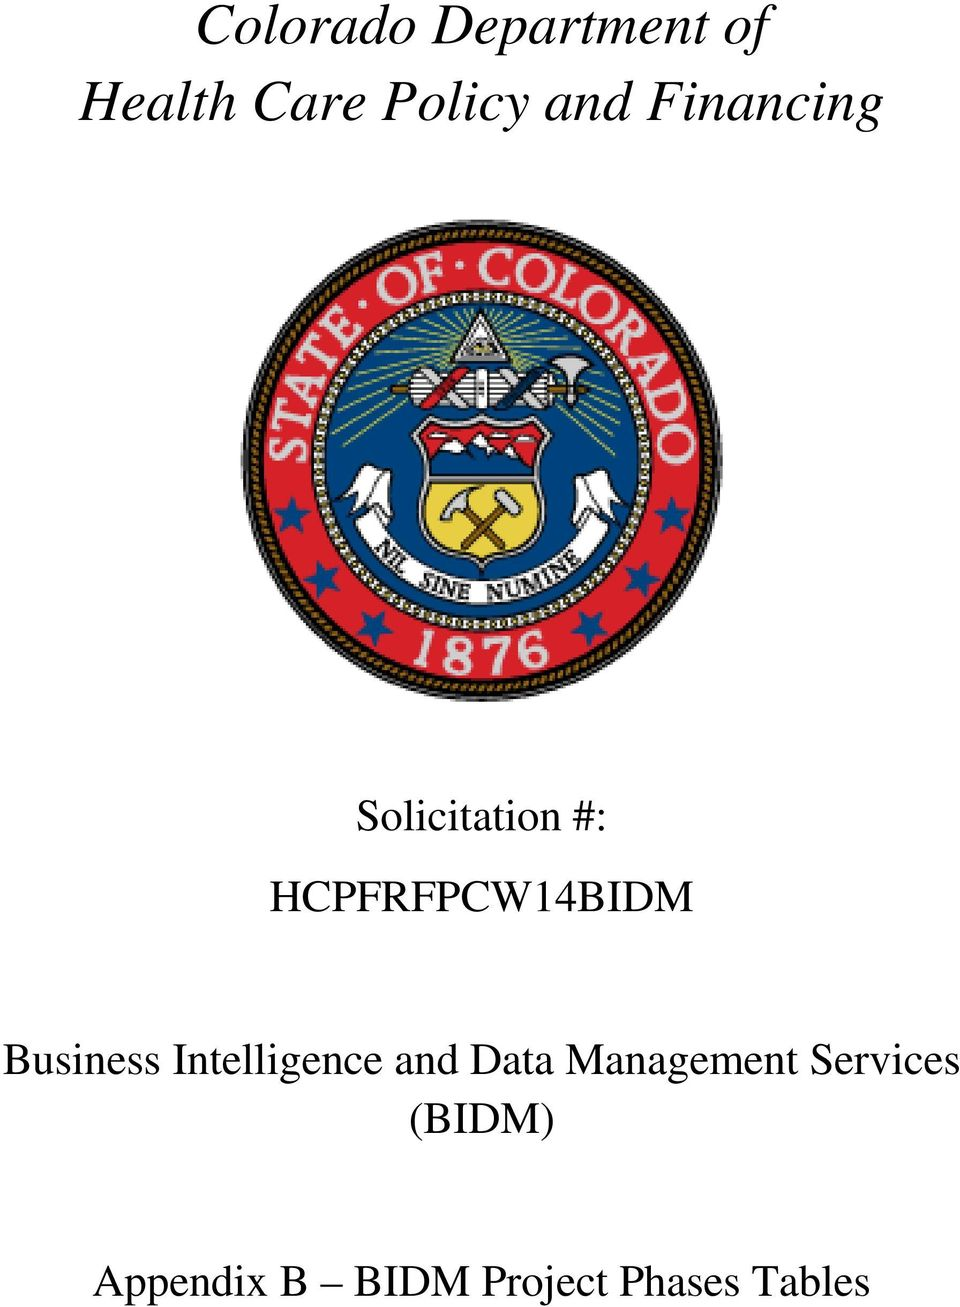 Business Intelligence and Data Management